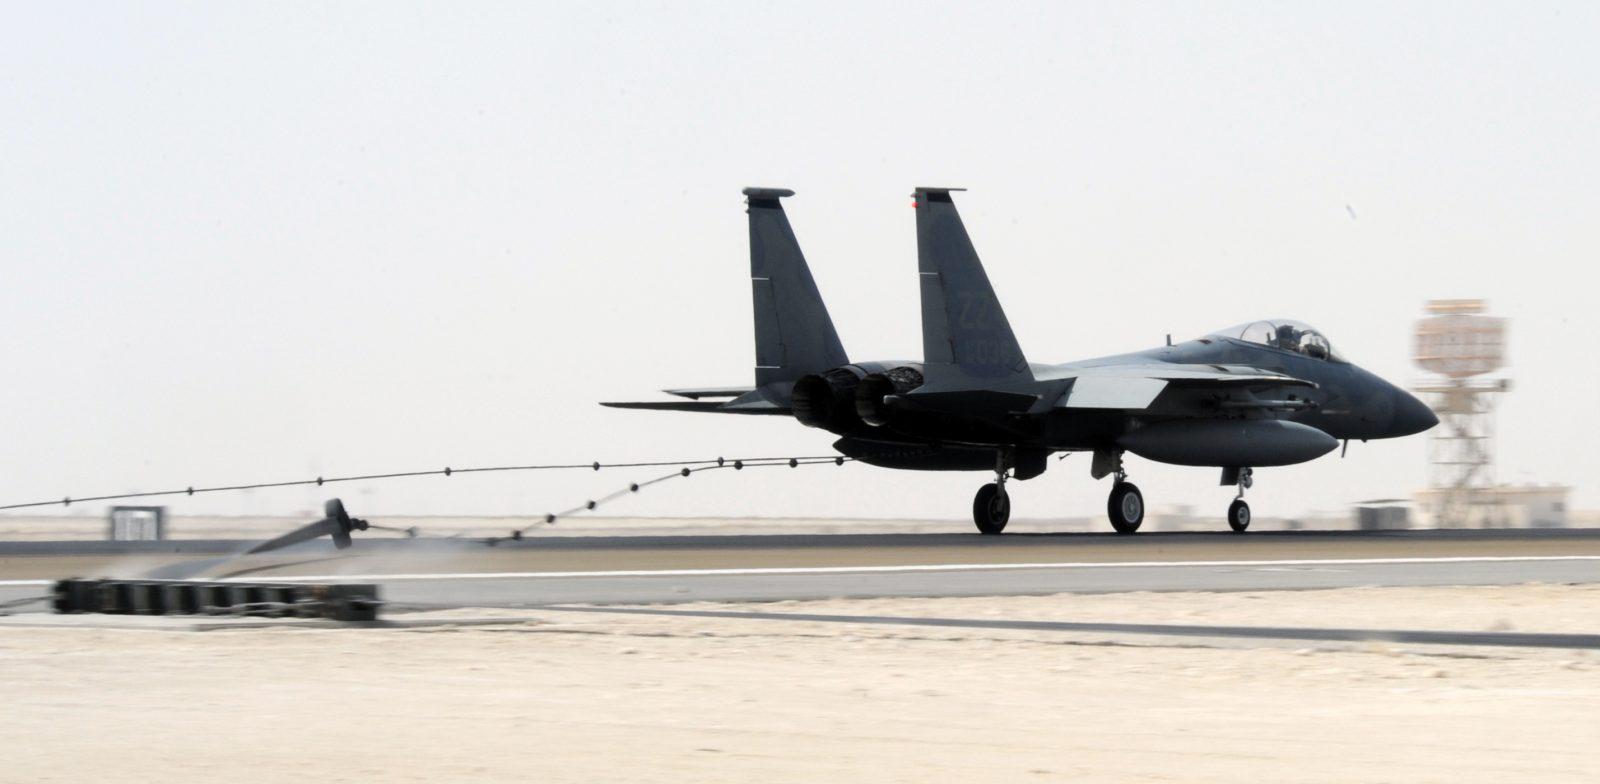 Video of F-15 Arresting Cable Landing